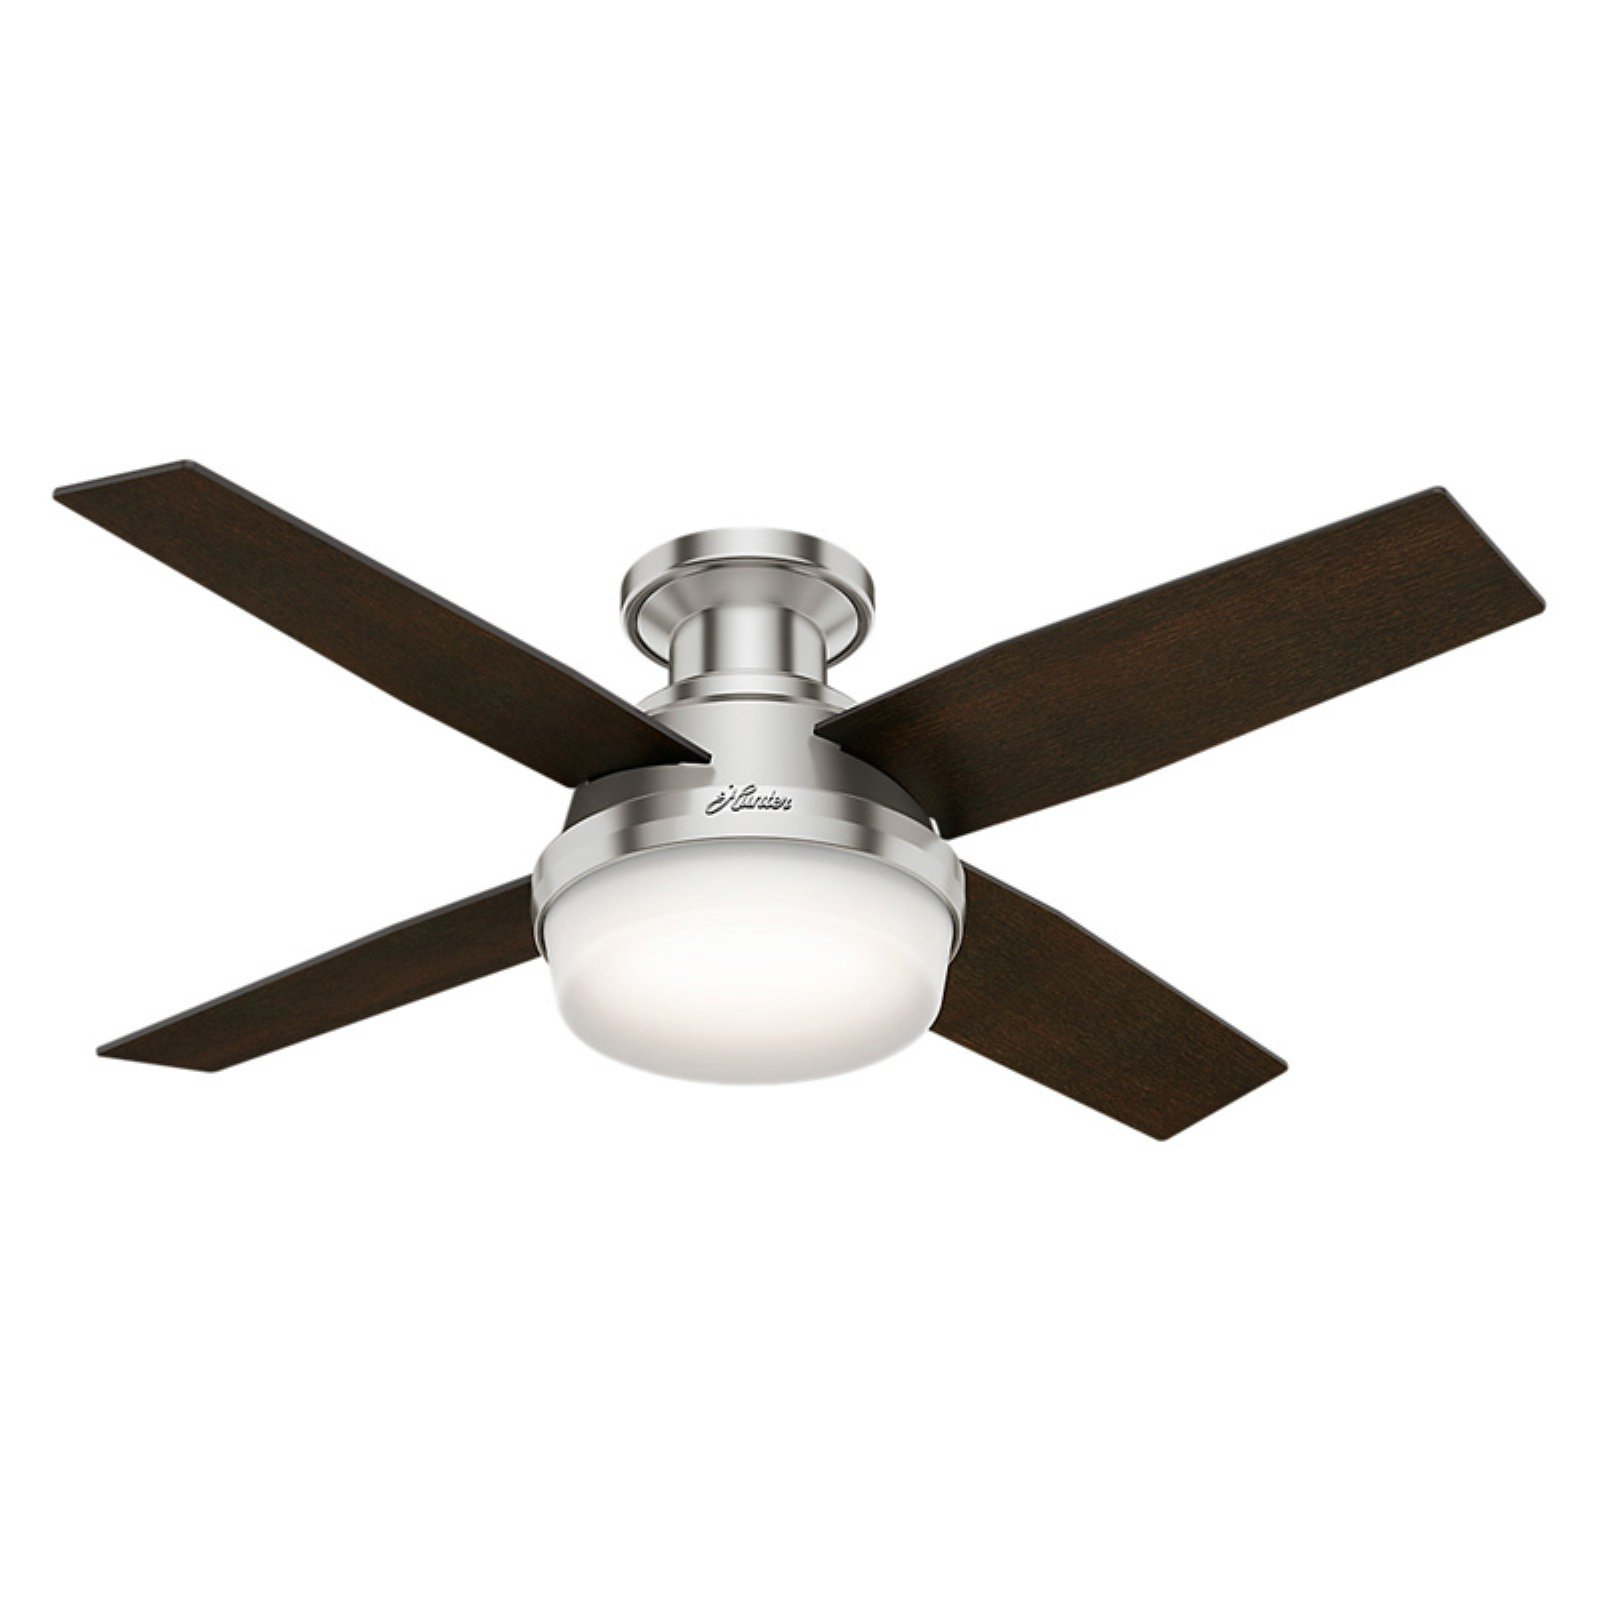 "Hunter Fans 44"" Dempsey Low Profile with Light Brushed Nickel"